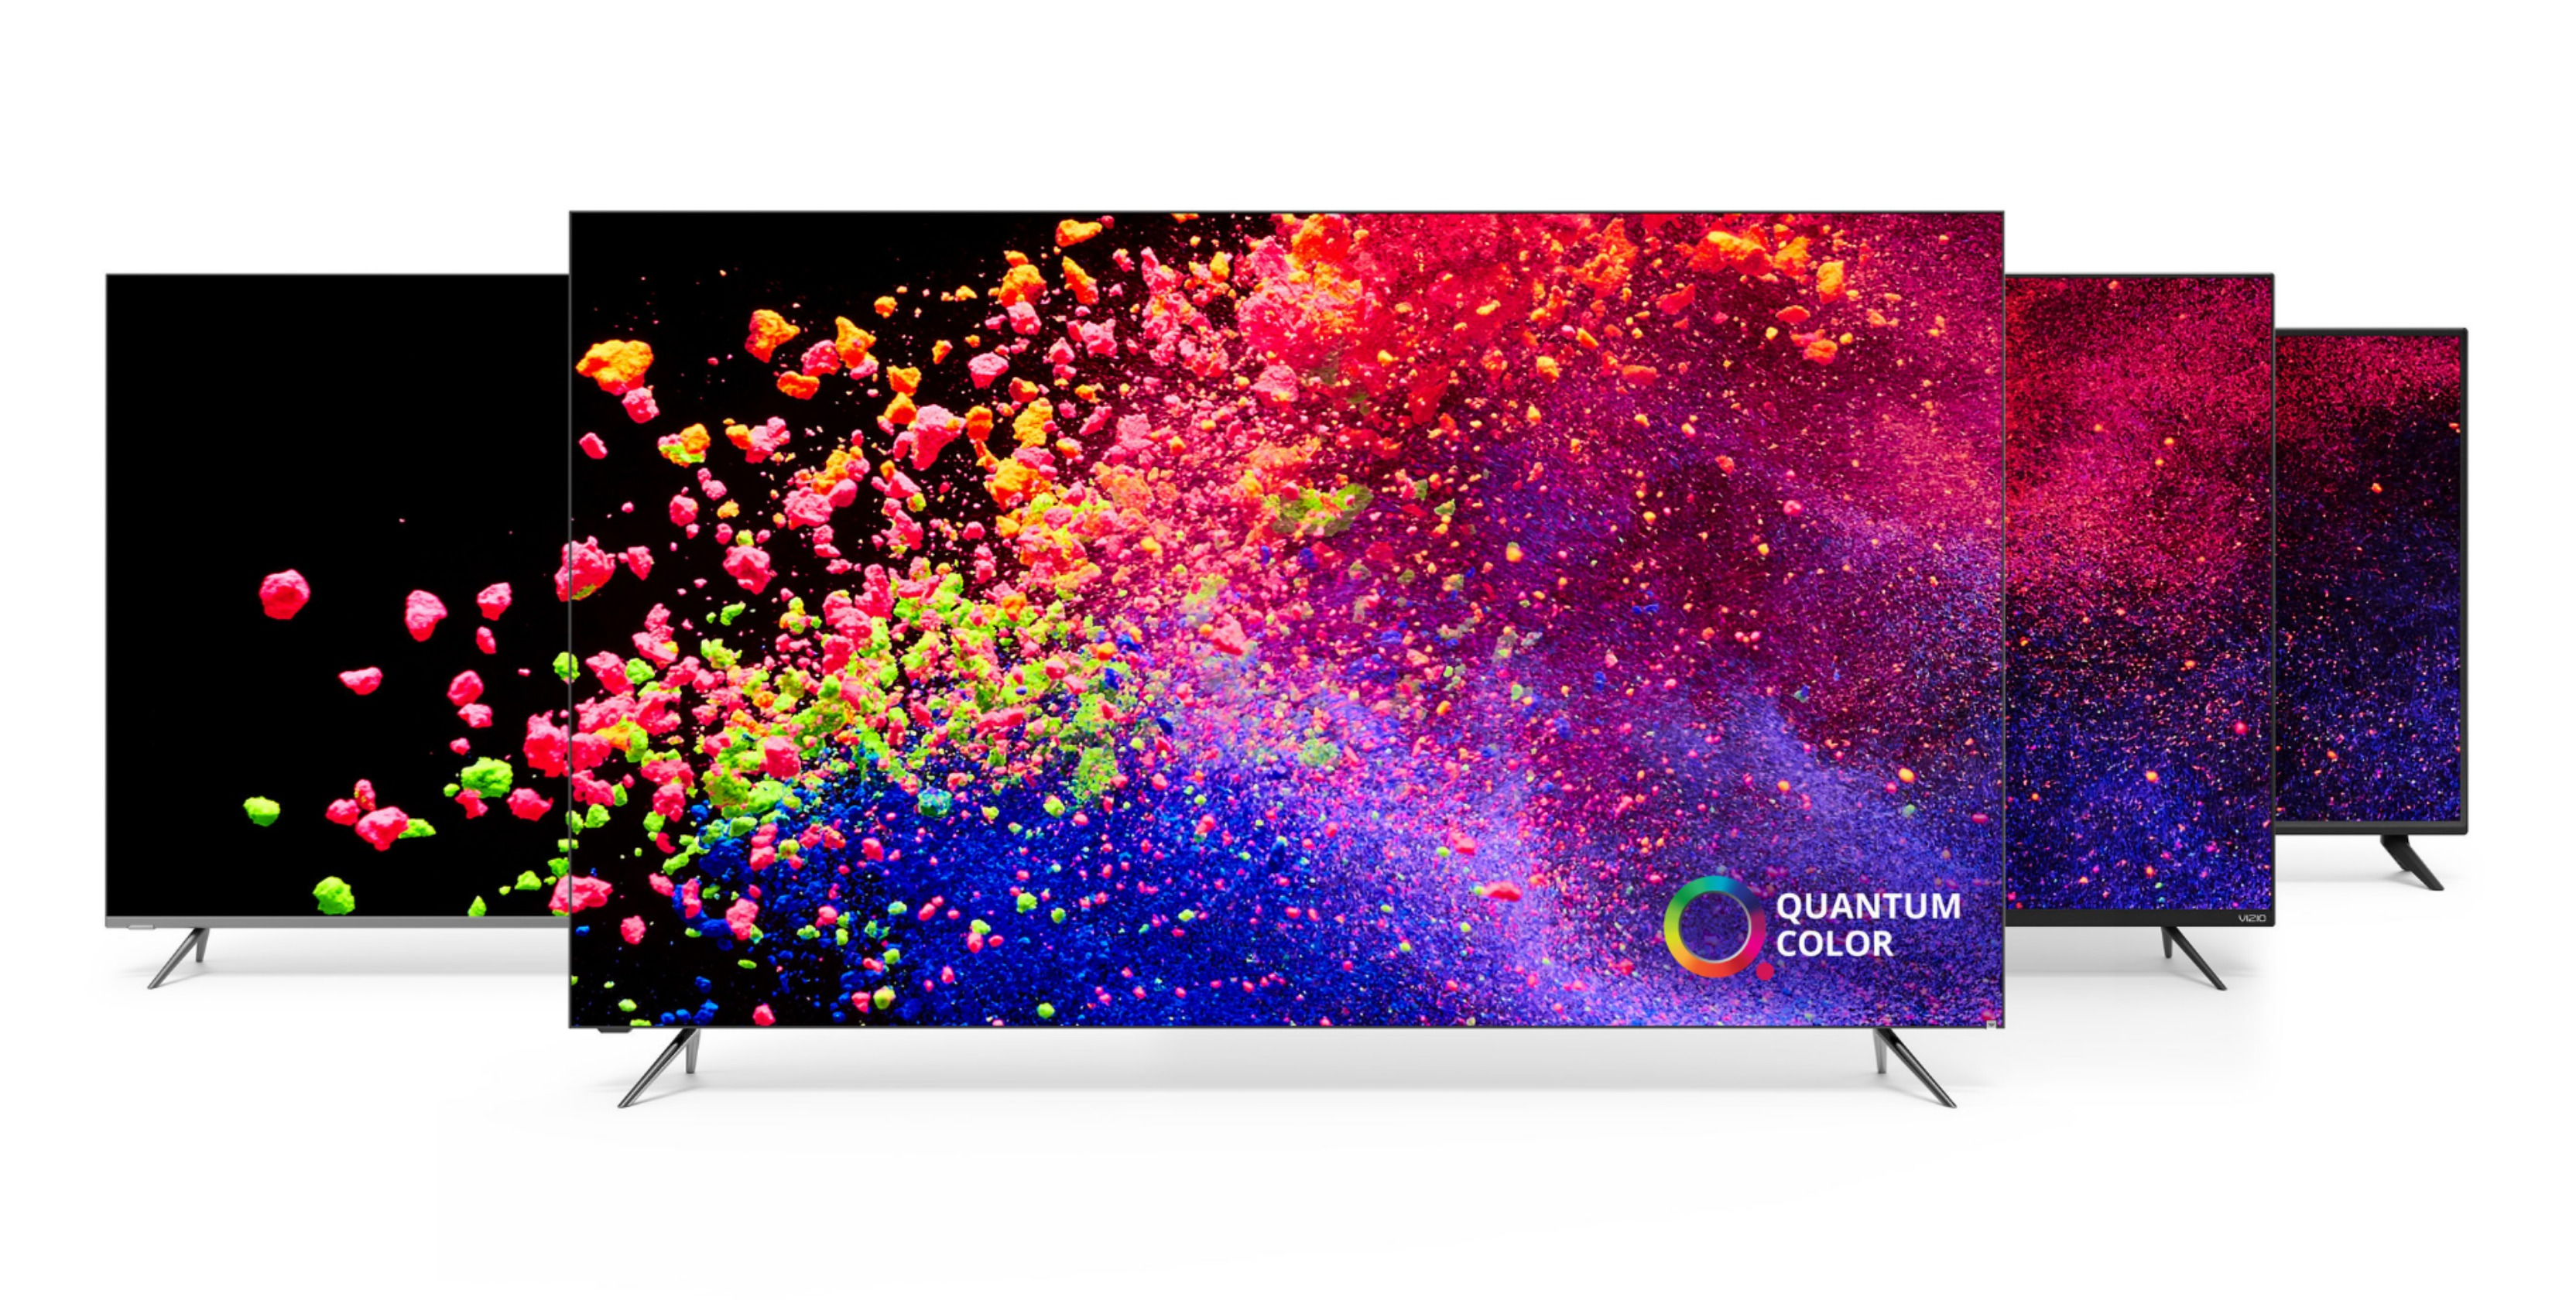 Vizio releases 4K HDR smart TVs with upcoming Airplay 2 and HomeKit support